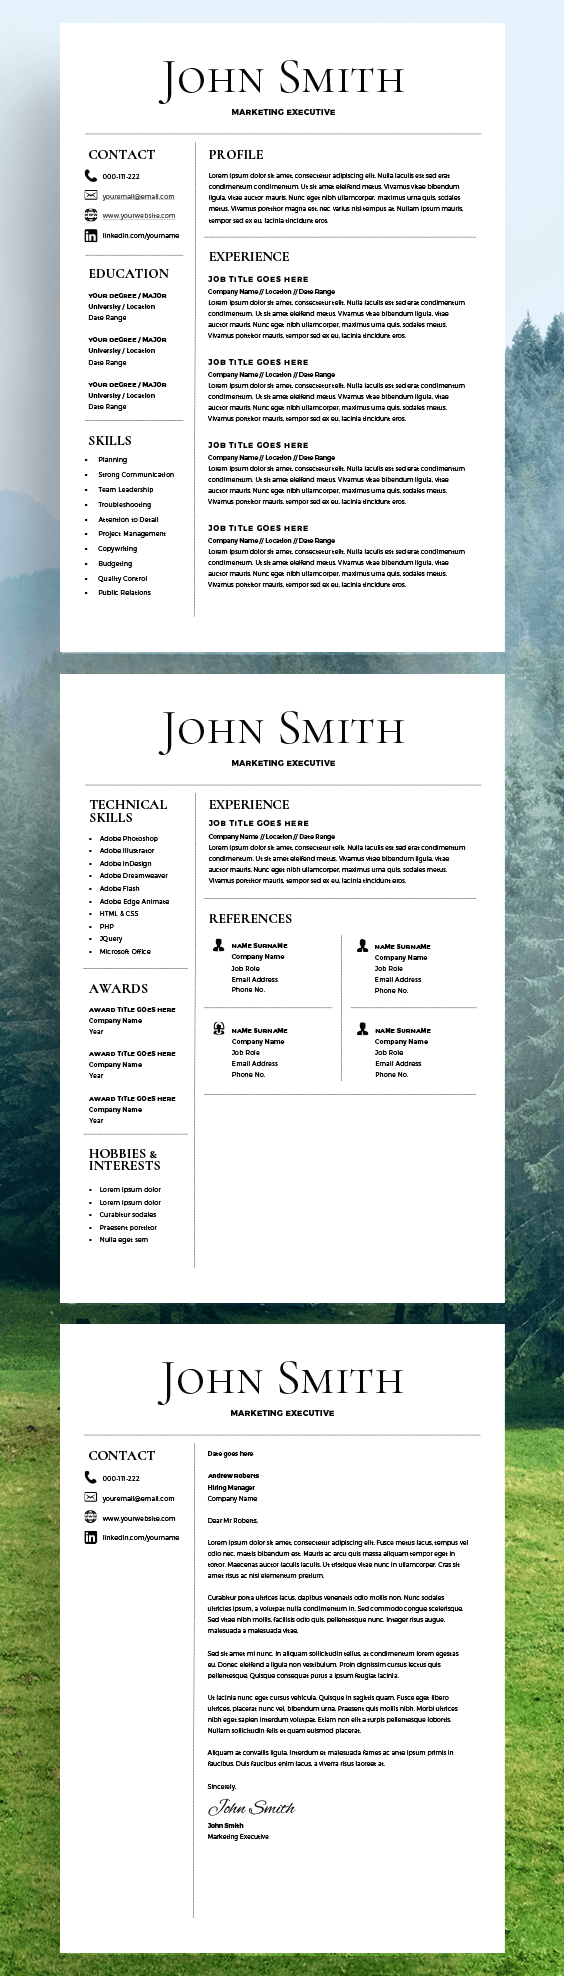 Resume Template   CV Template   Free Cover Letter   MS Word On Mac / PC